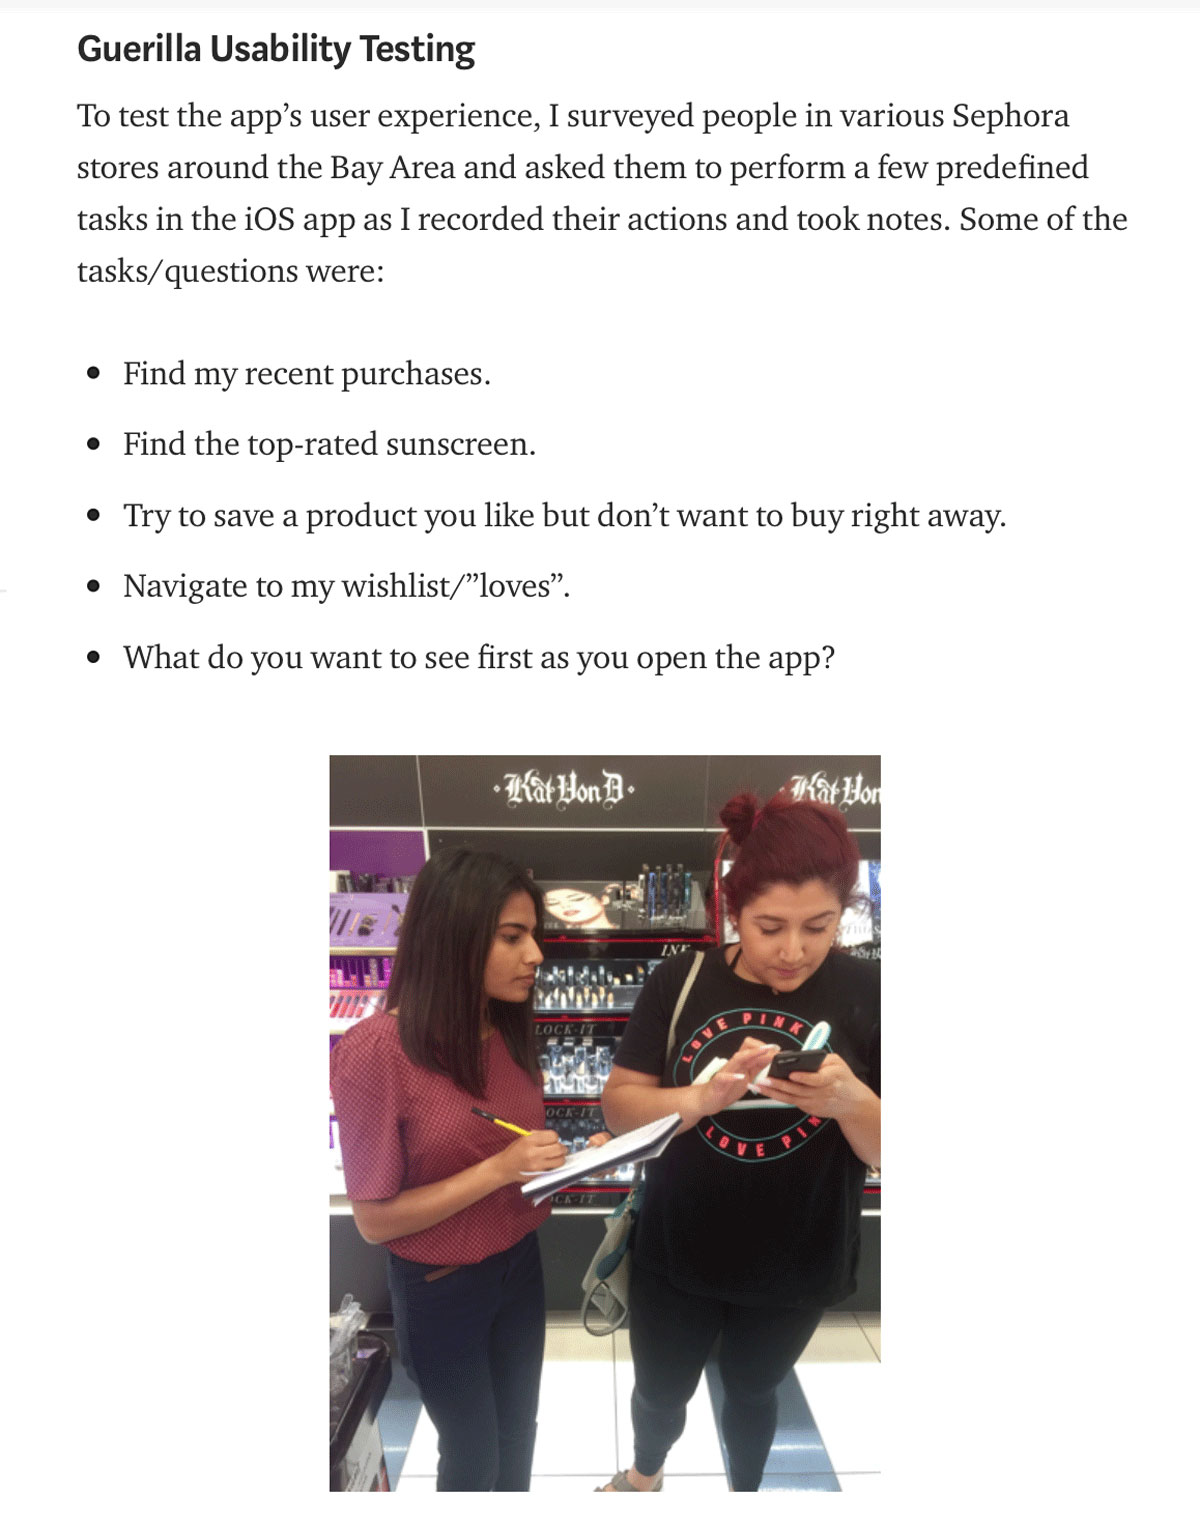 An extract from Priyanka Gupta's case study: An unsolicited redesign of the Sephora mobile app